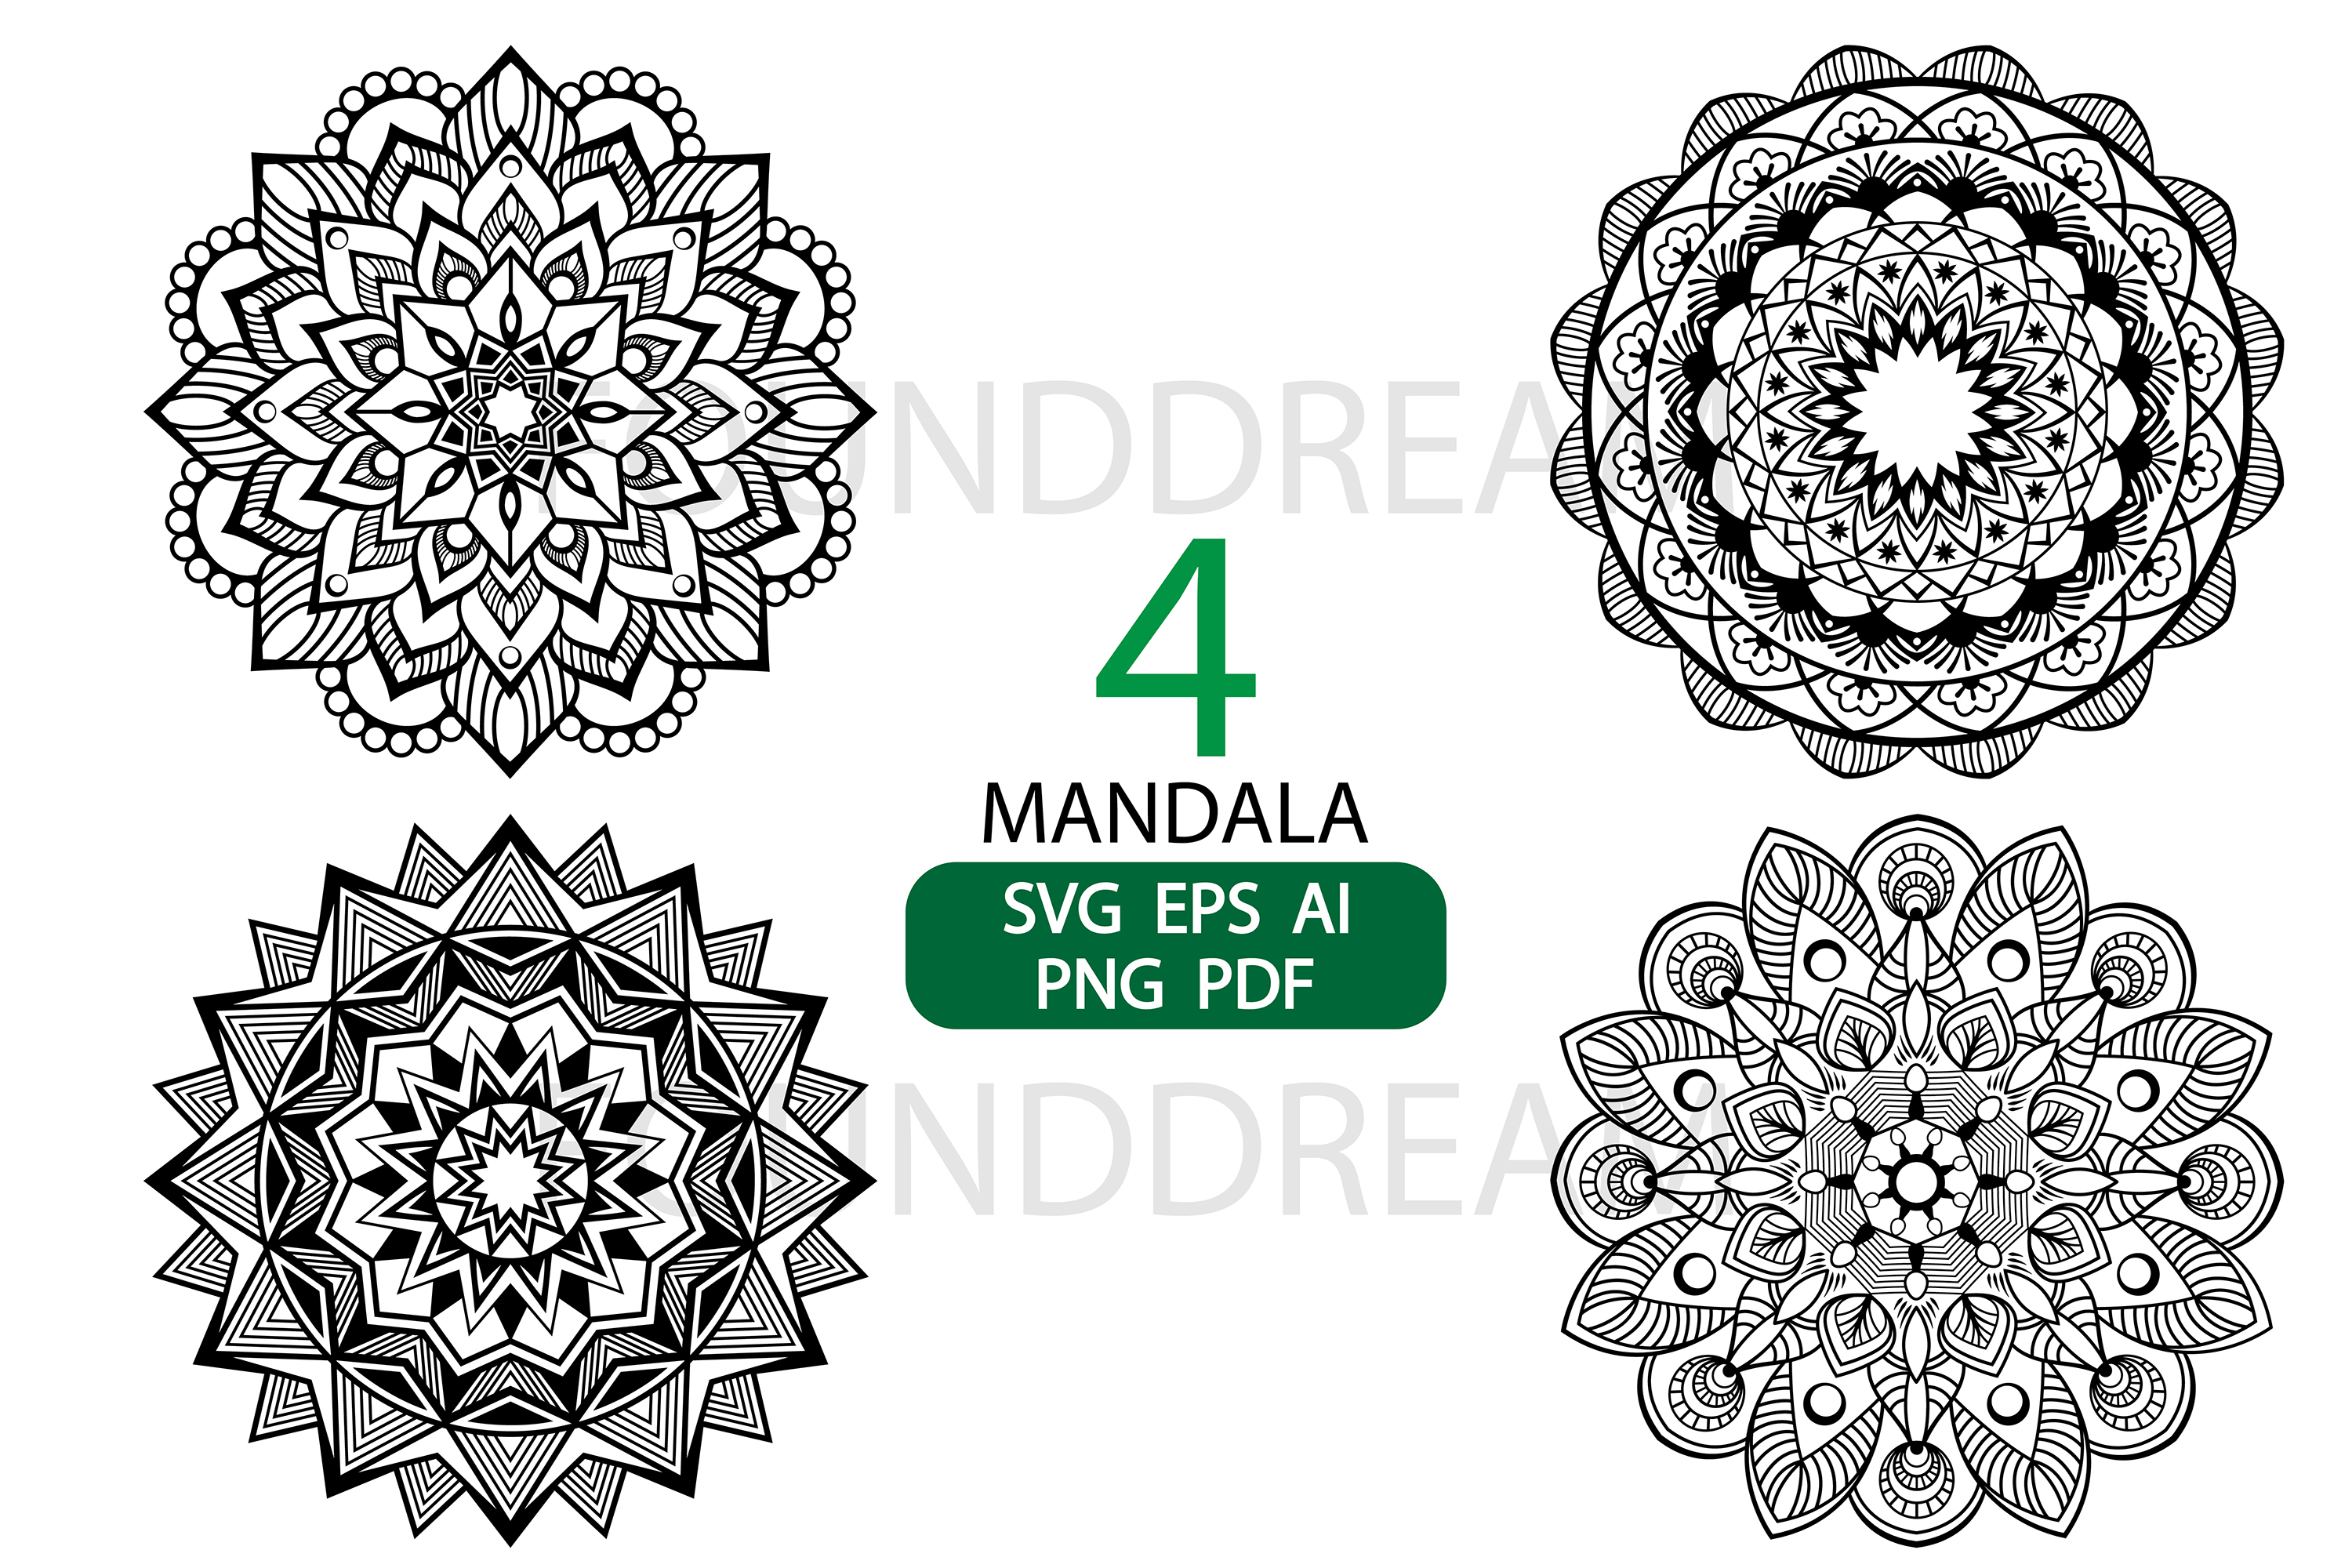 Mandala svg files example image 2